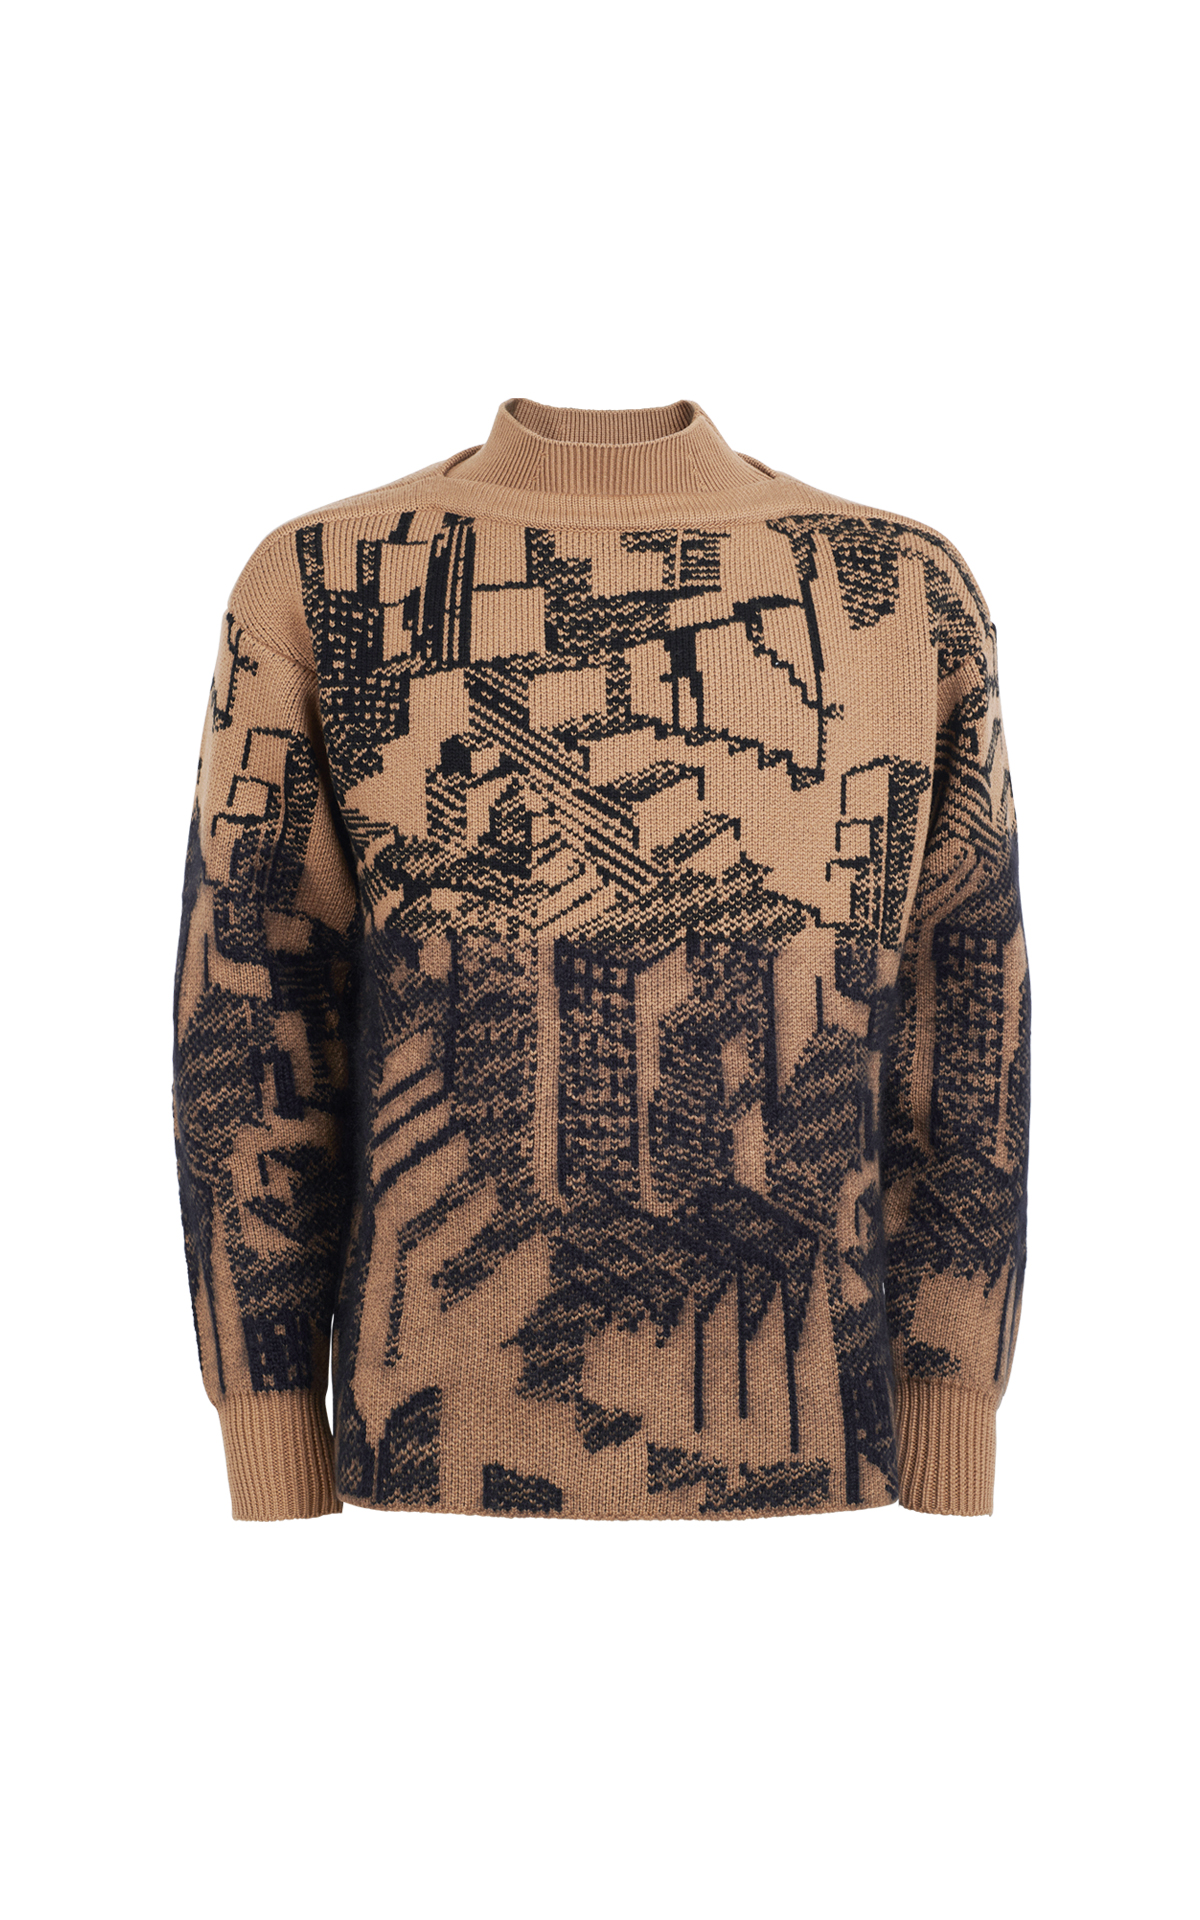 Ermenegildo Zegna Brown printed sweater